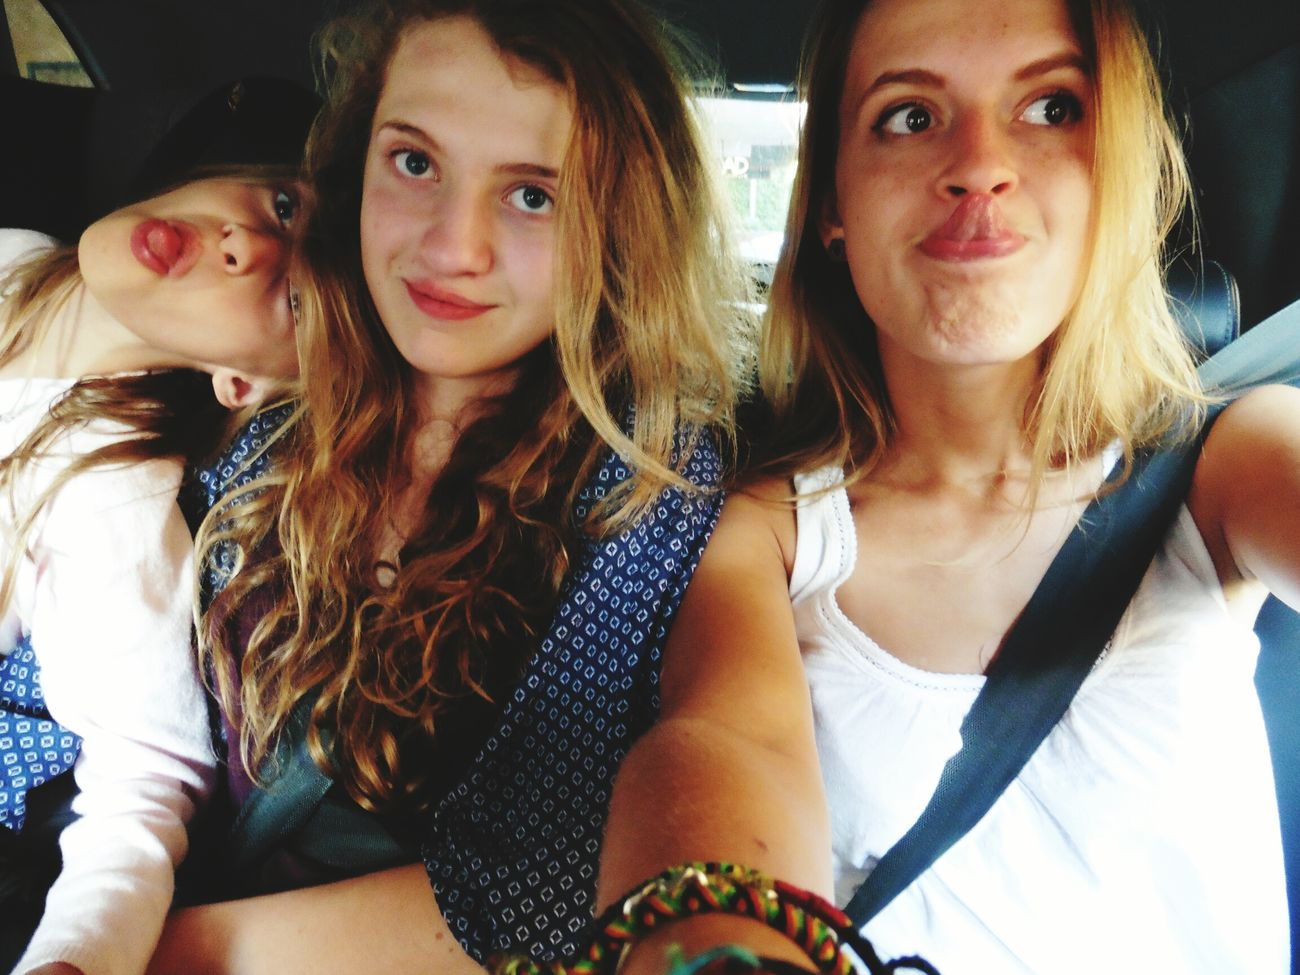 Sister-Me-Sister Sisters Family Travelling Appreciate The Little Things In Life People Together People Smile Three Girls Girls